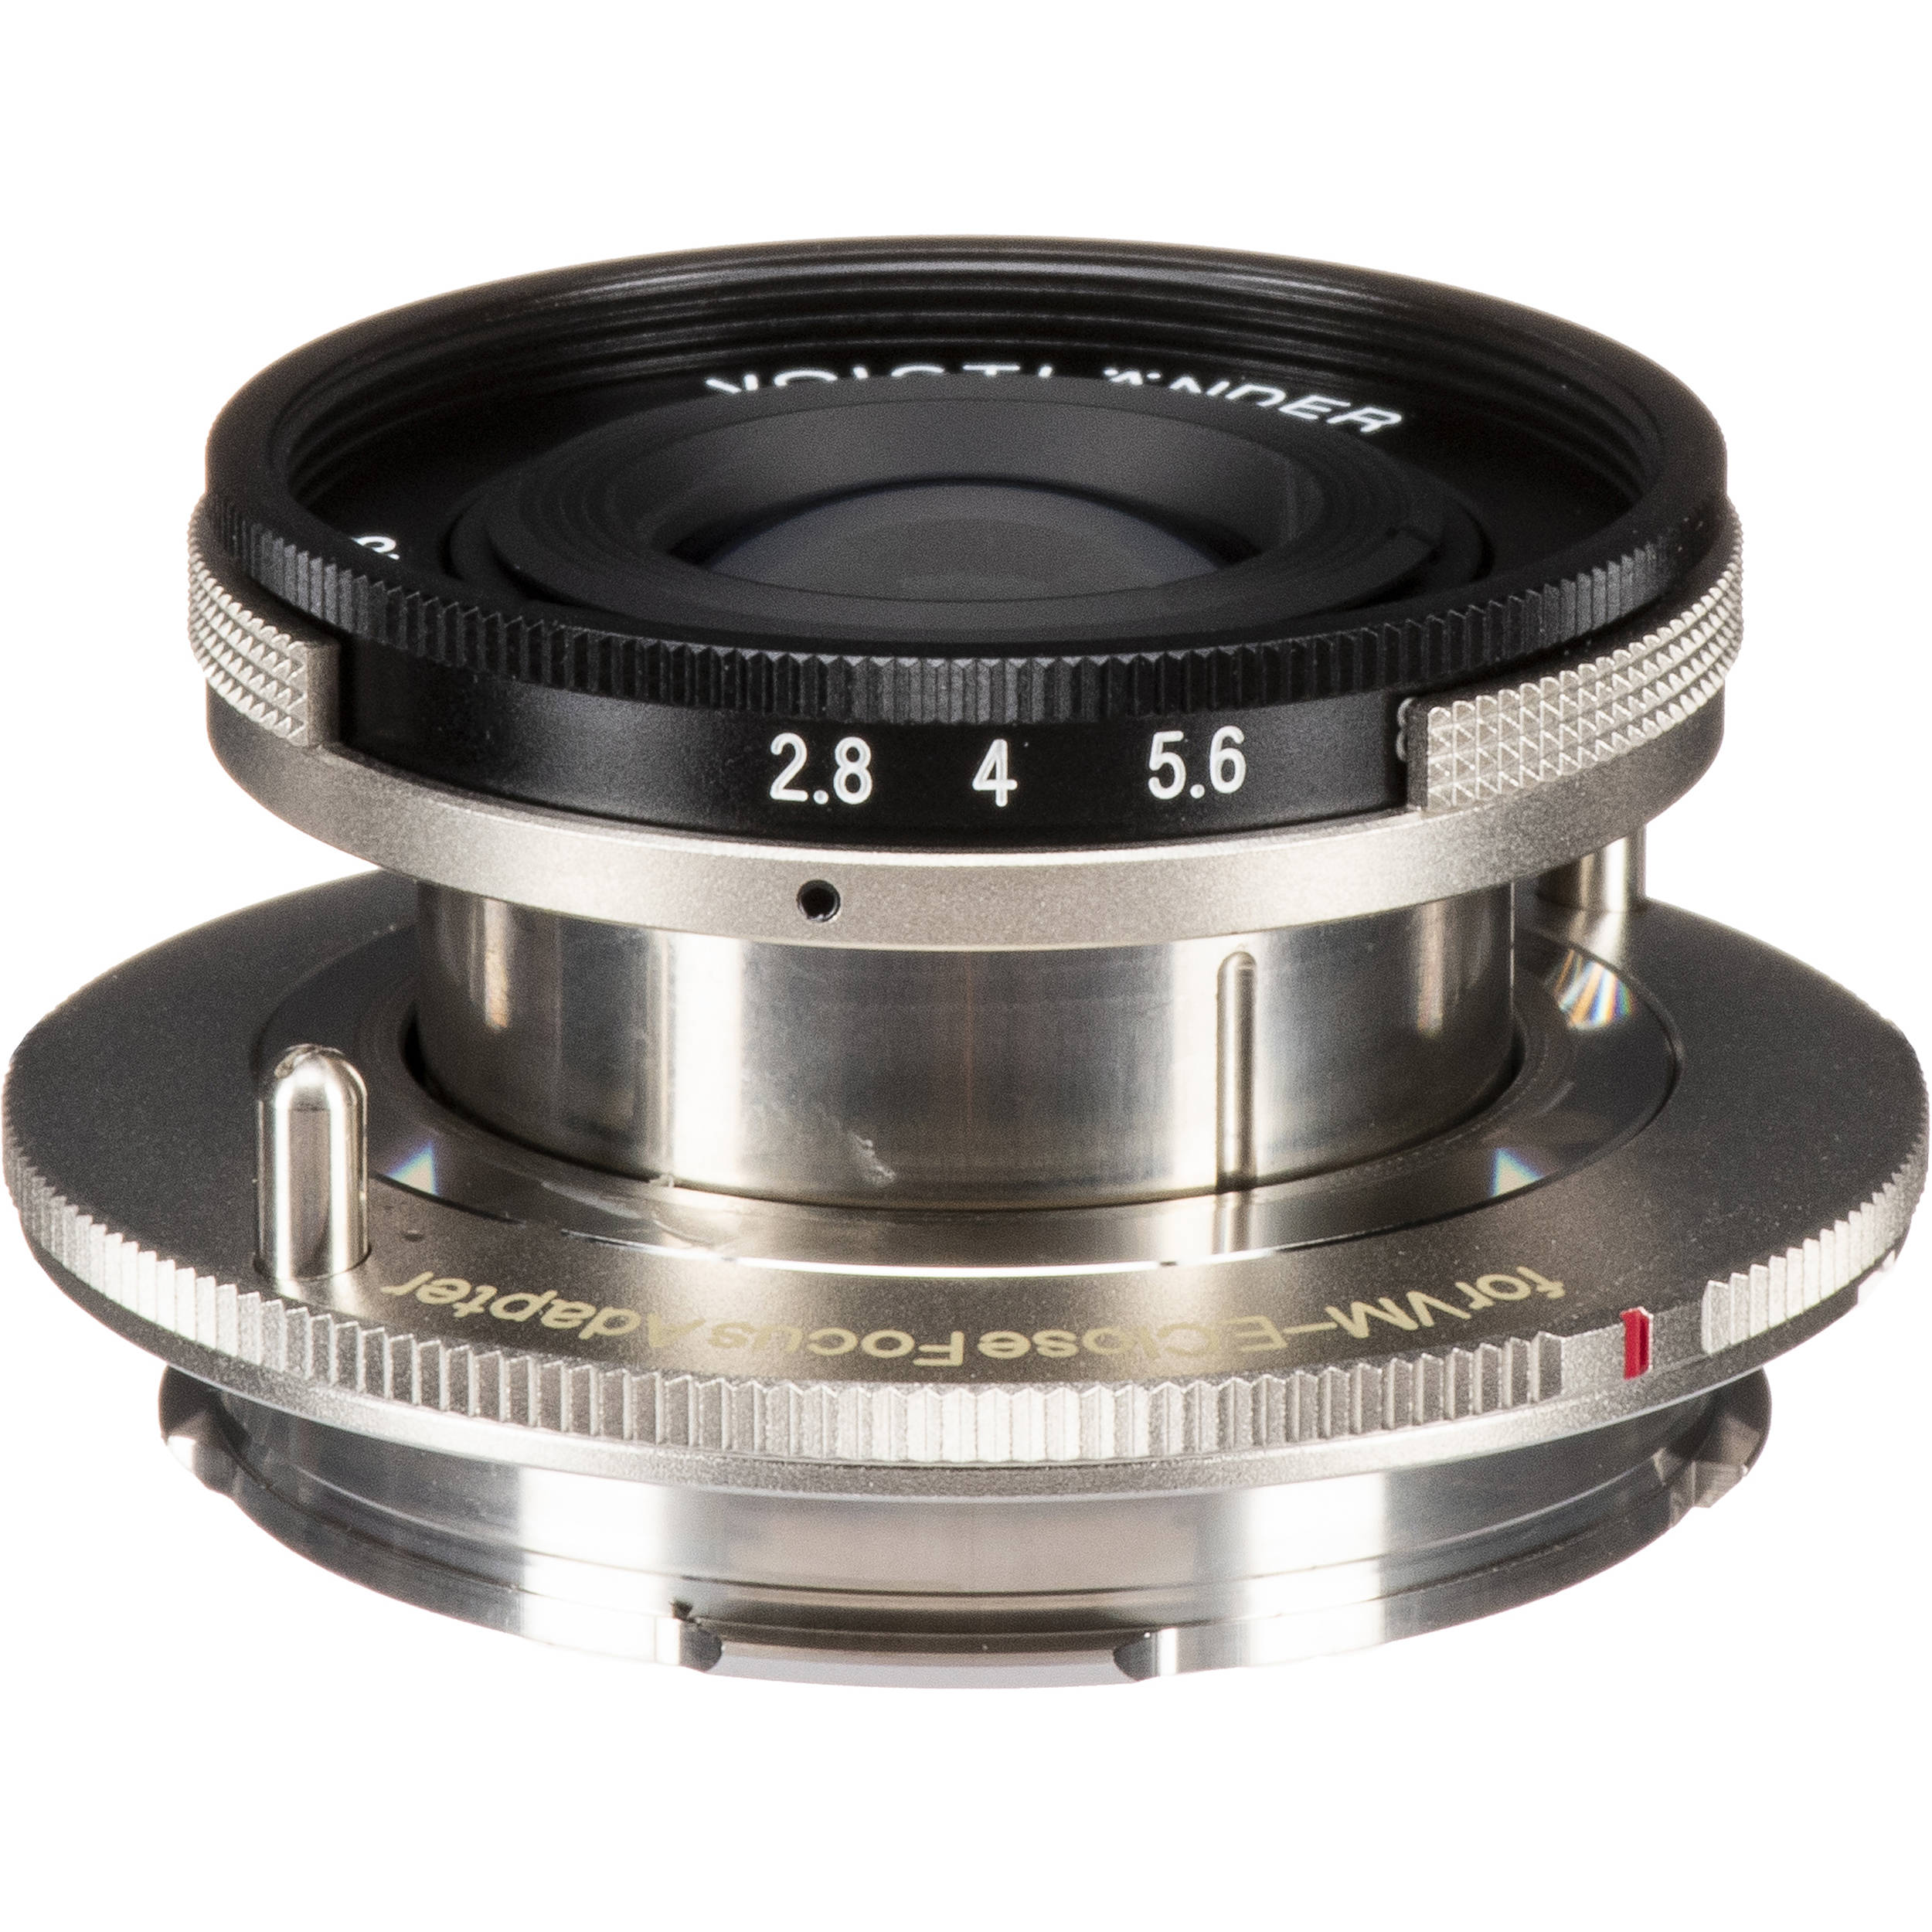 Voigtlander Leica VM Mount Lens Adapter Compatible for Sony E-Mount Camera